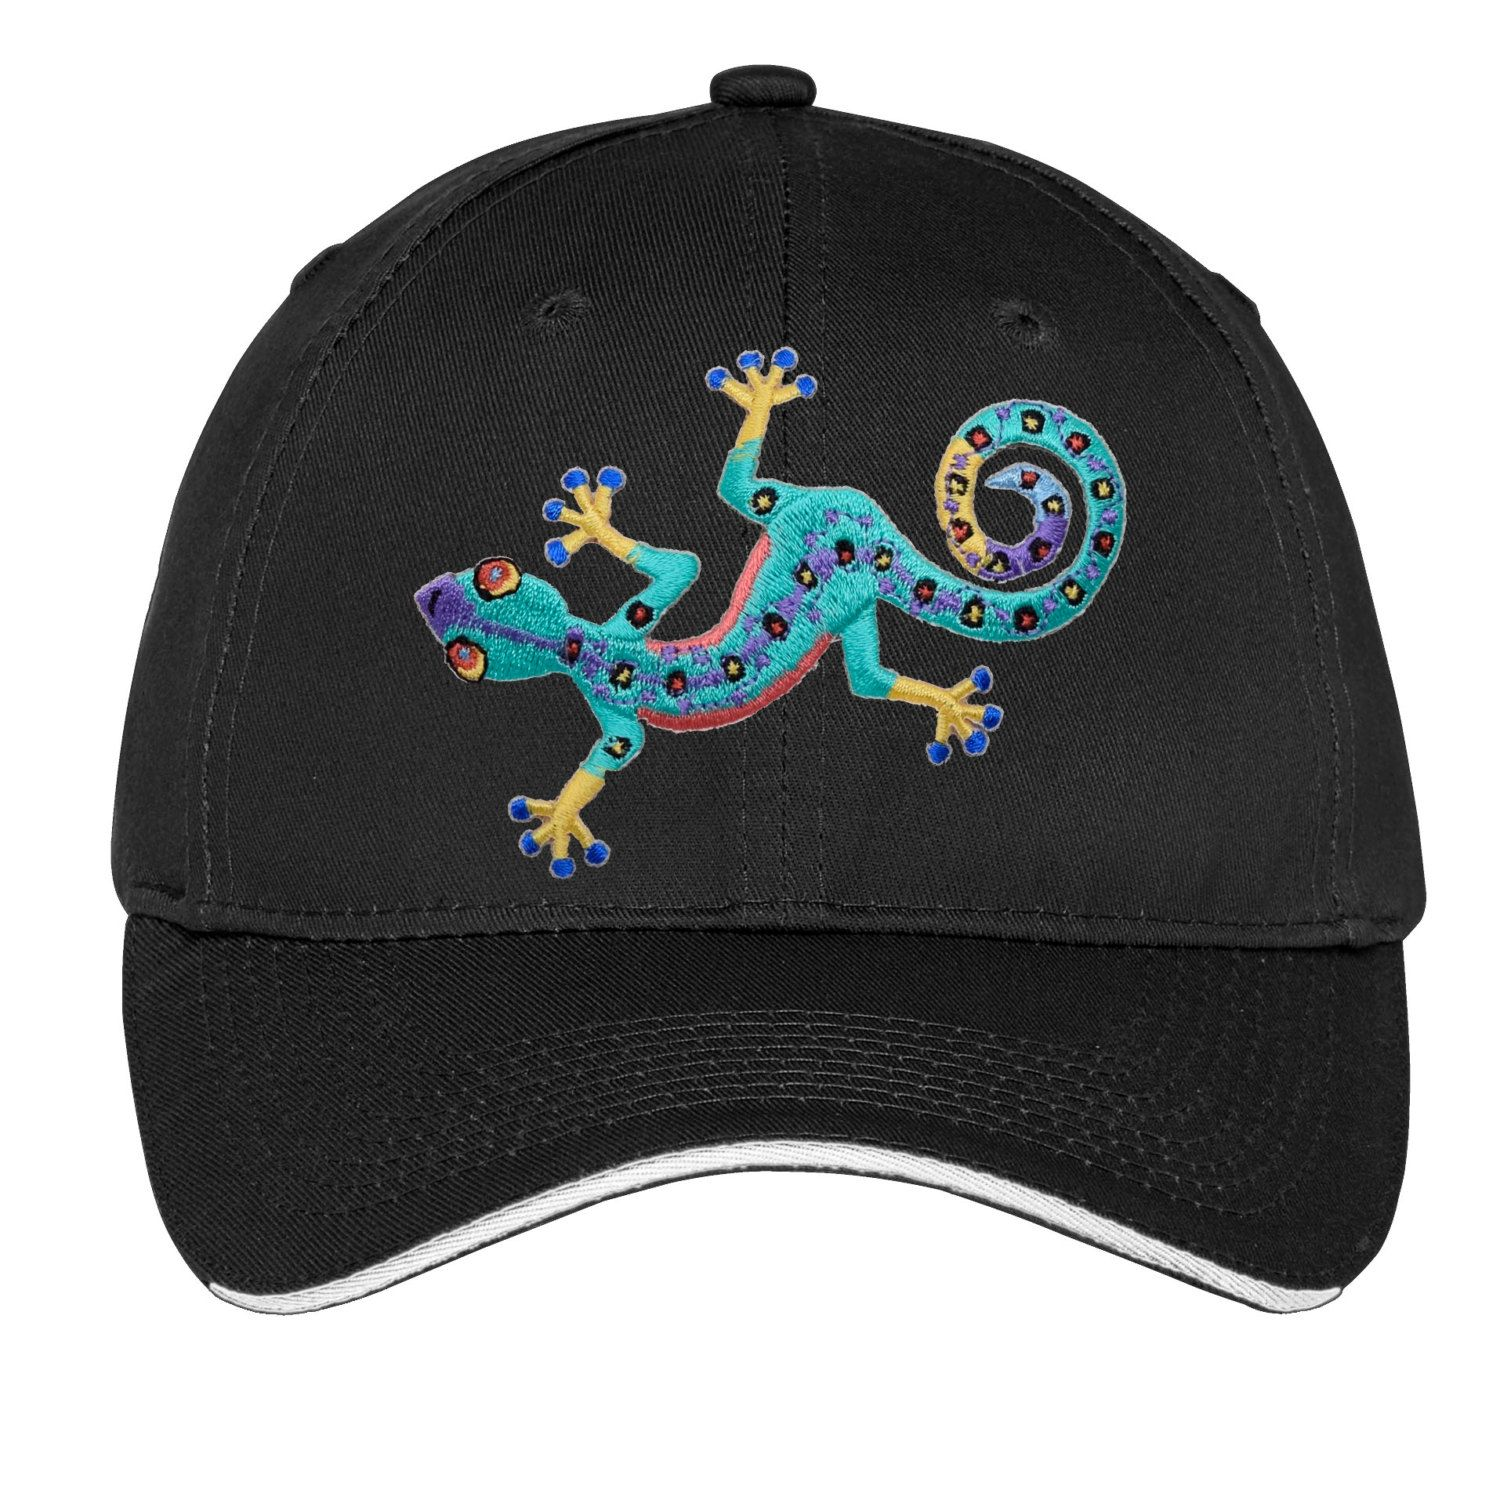 e46147ecd31 Gecko Embroidered Hat Cap Baseball Fashion Womens Girls Style Colorful  Green Blue Yellow by TimeofReason on Etsy